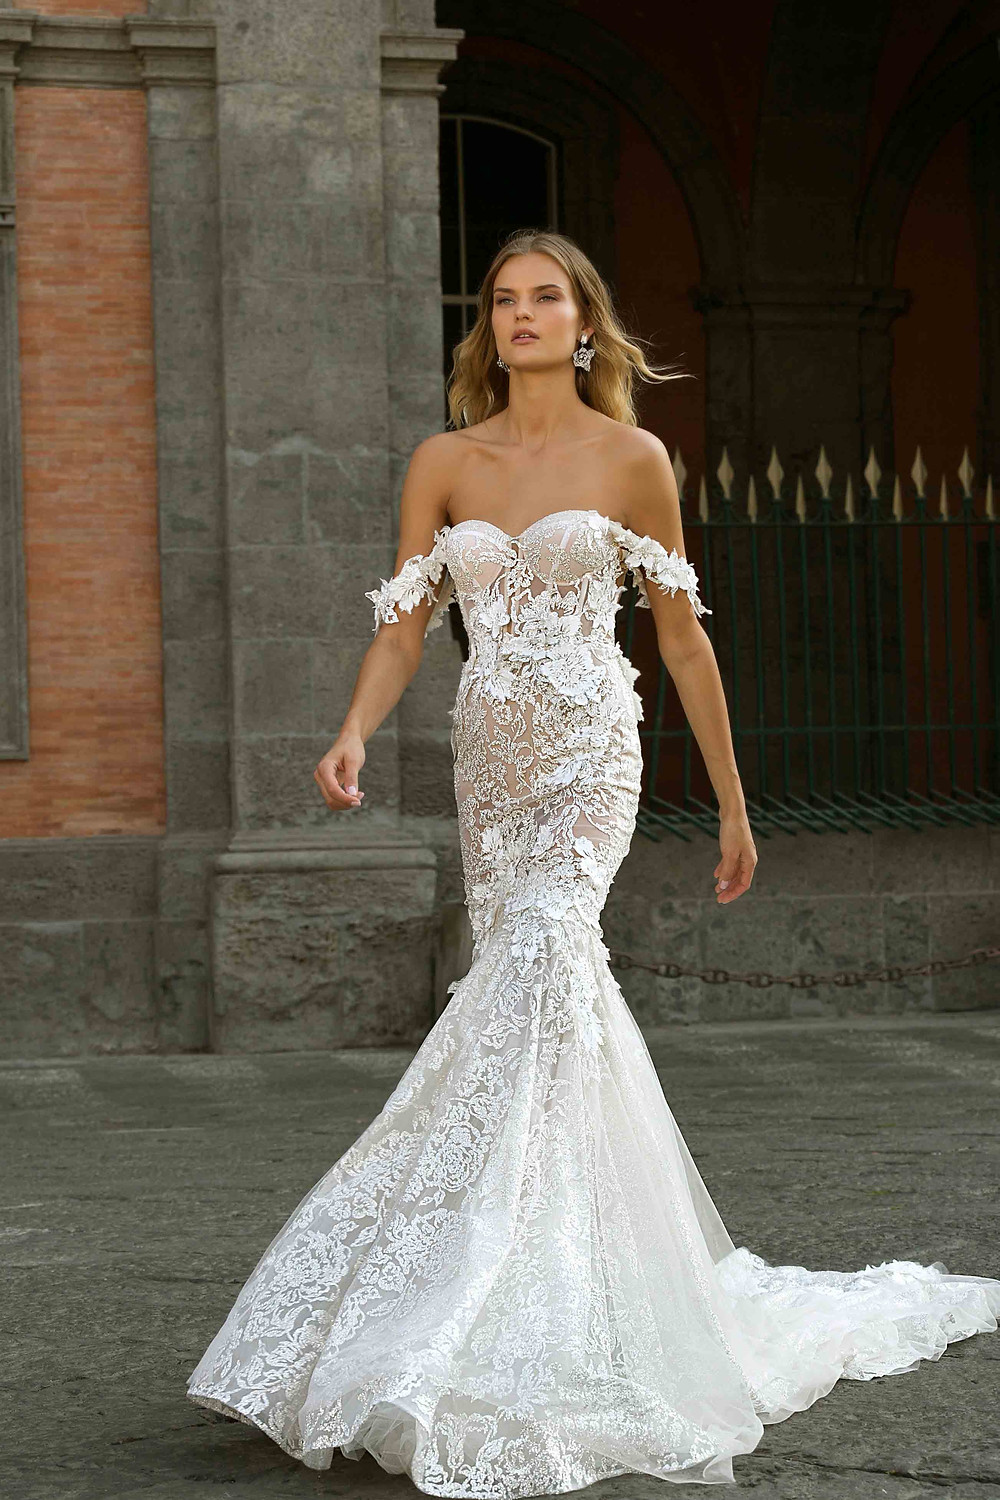 A Berta 2020 off the shoulder, corset mermaid wedding dress, with lace and flowers